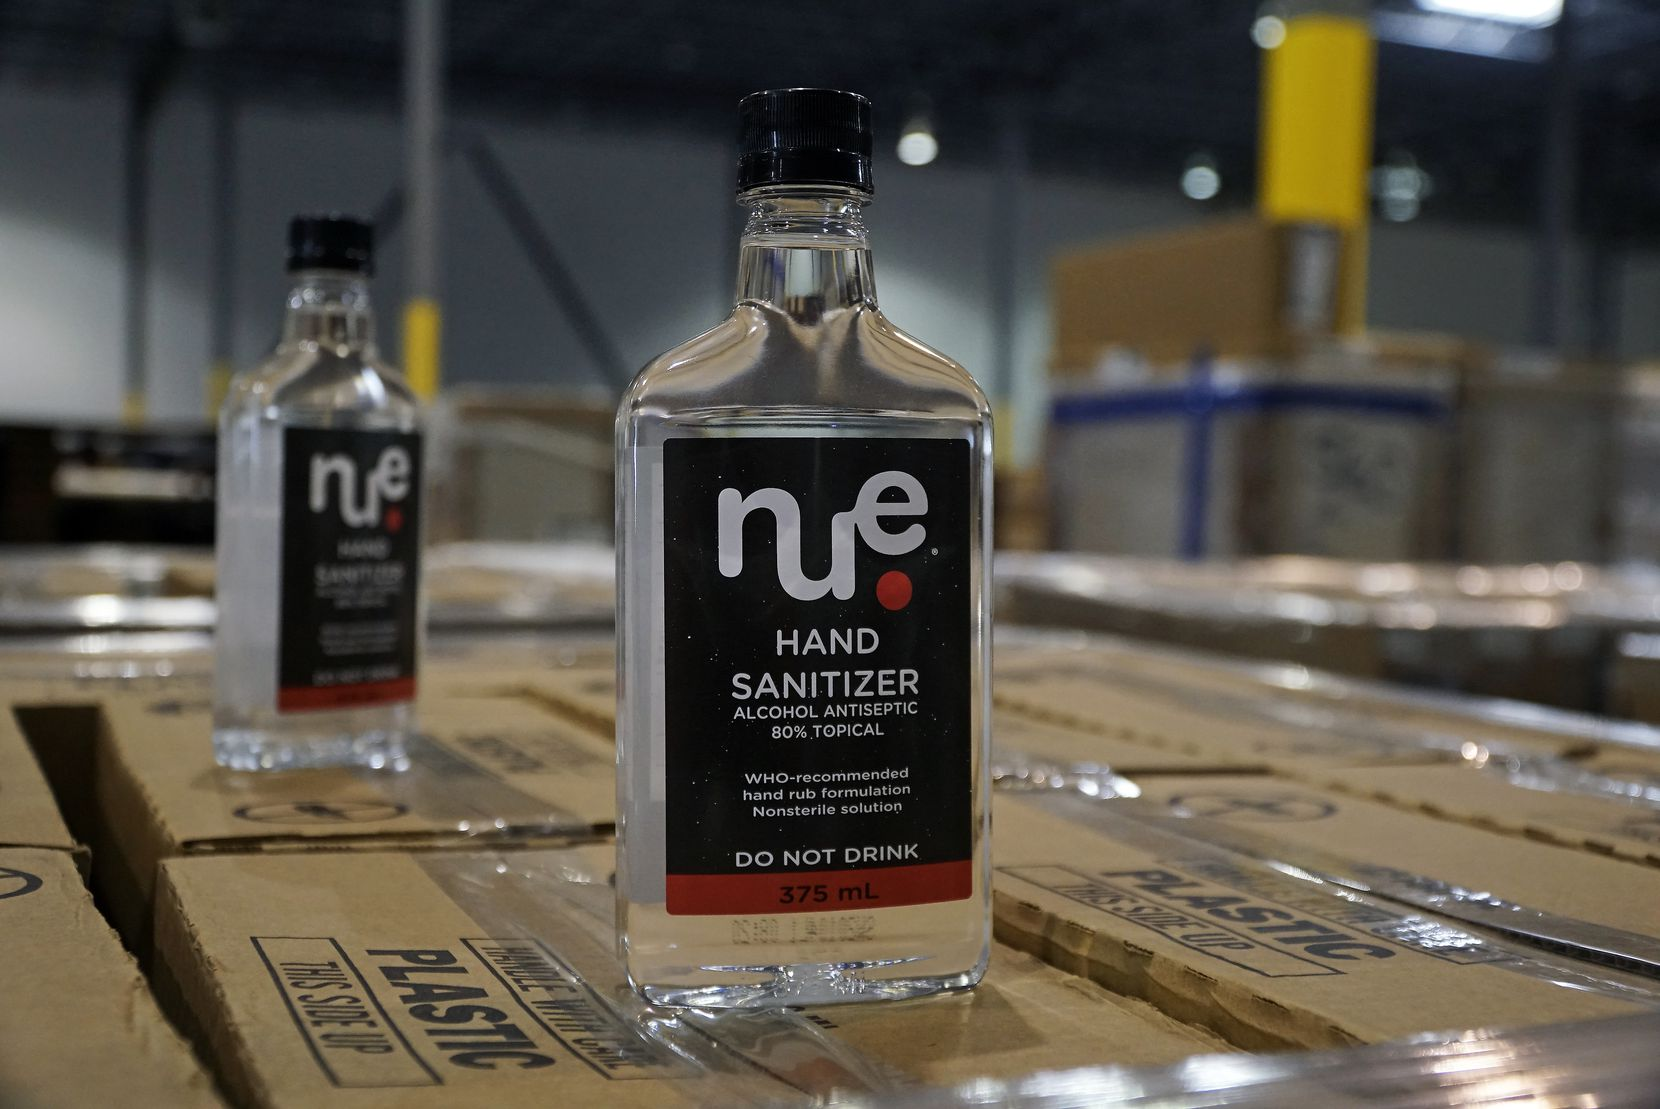 Southwest Spirits donated over 10,000 bottles of hand sanitizer to first responders in Dallas on Thursday